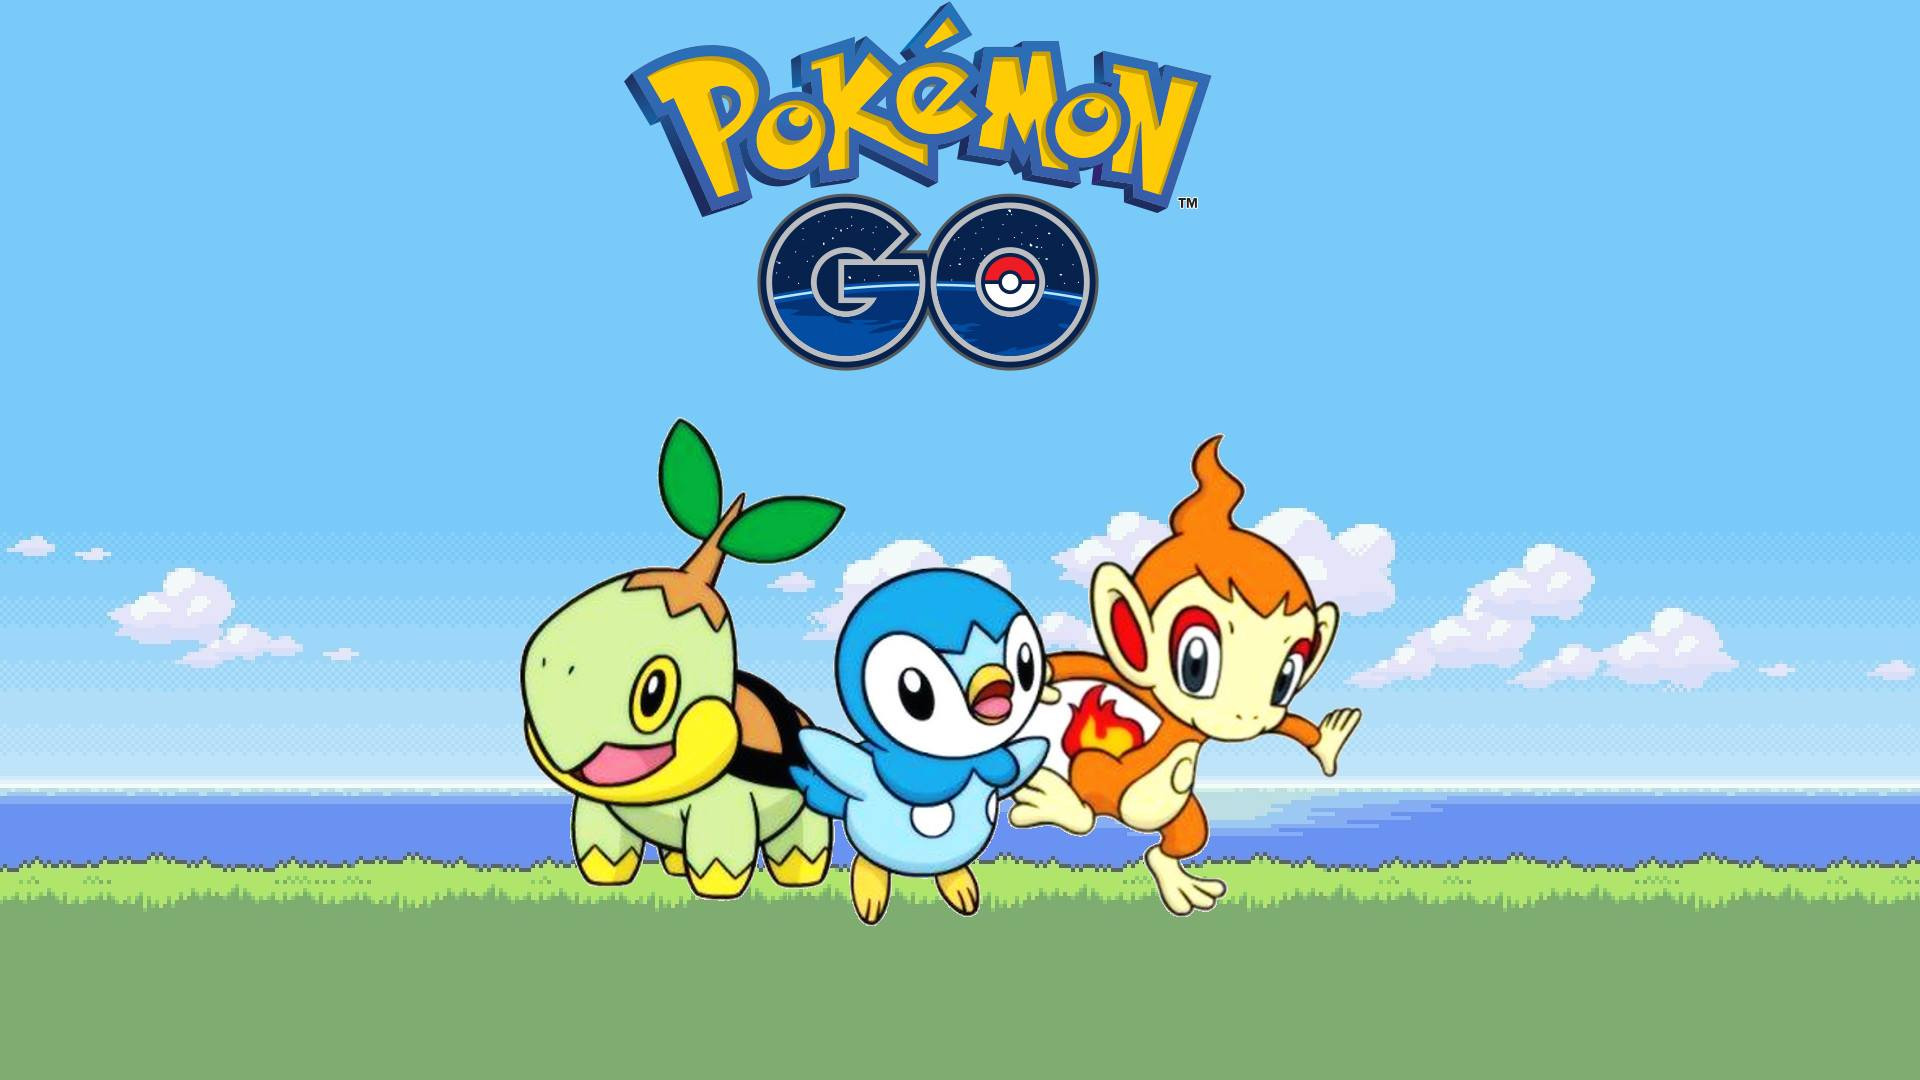 Photo of Pokemon Go Gen 4 Confirmed by the Pokemon Company